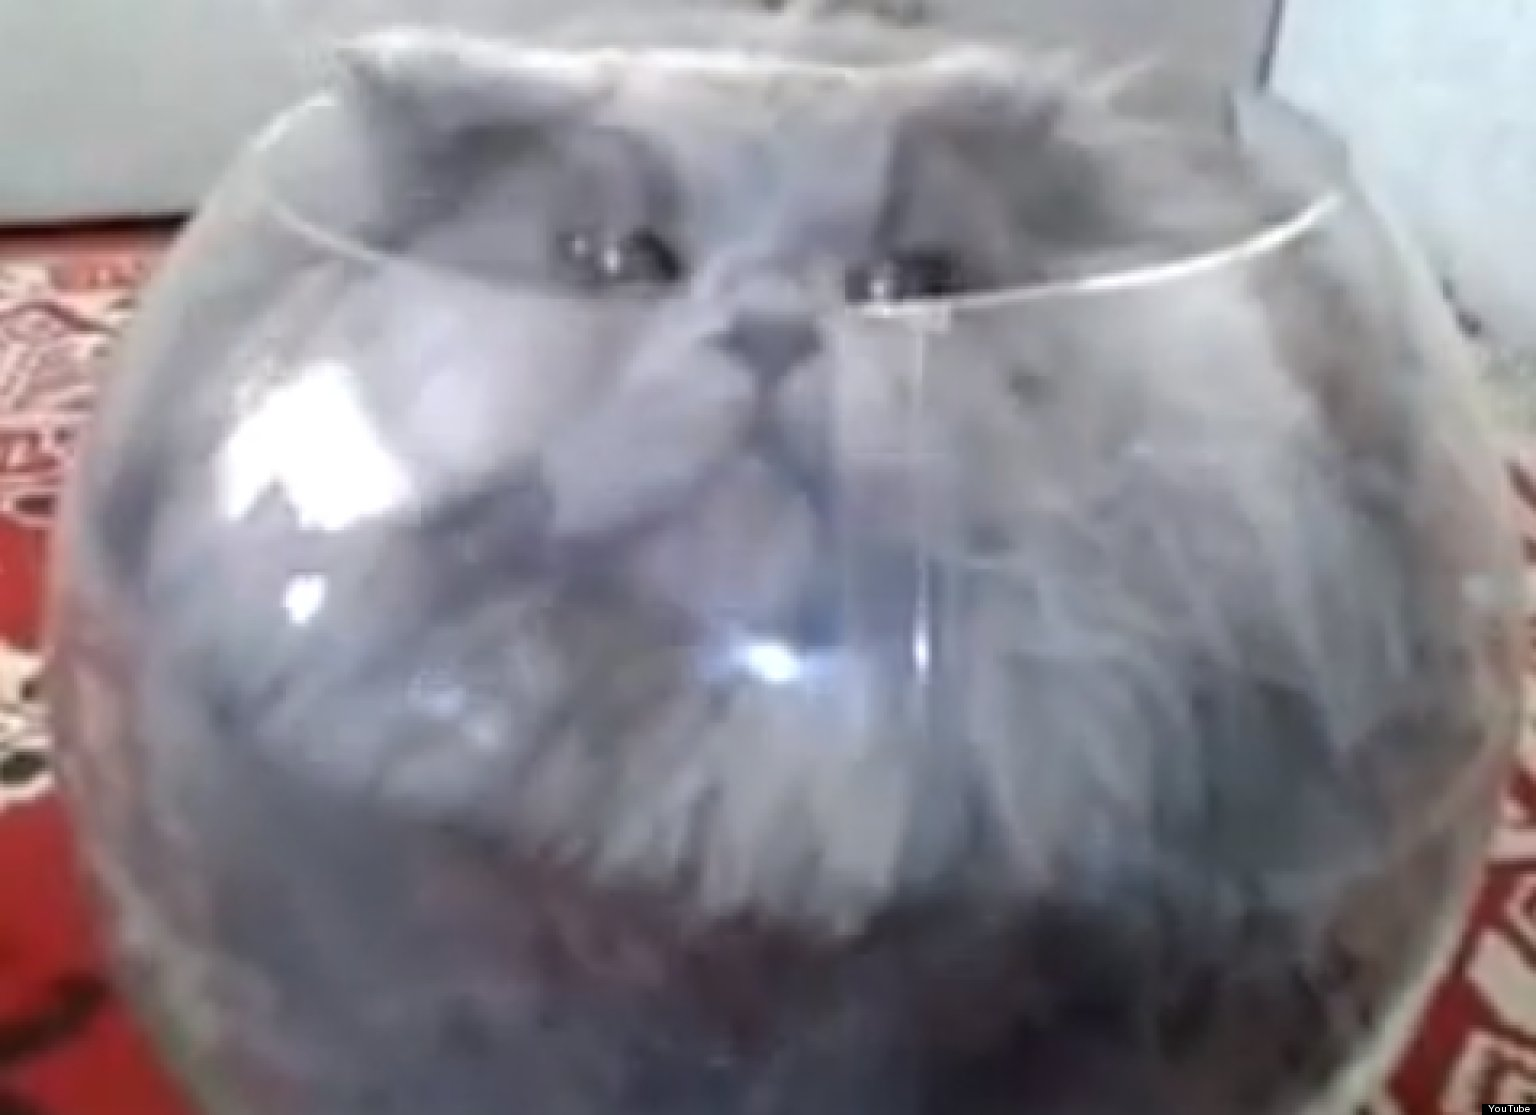 o-CAT-SQUEEZES-INTO-FISH-BOWL-facebook